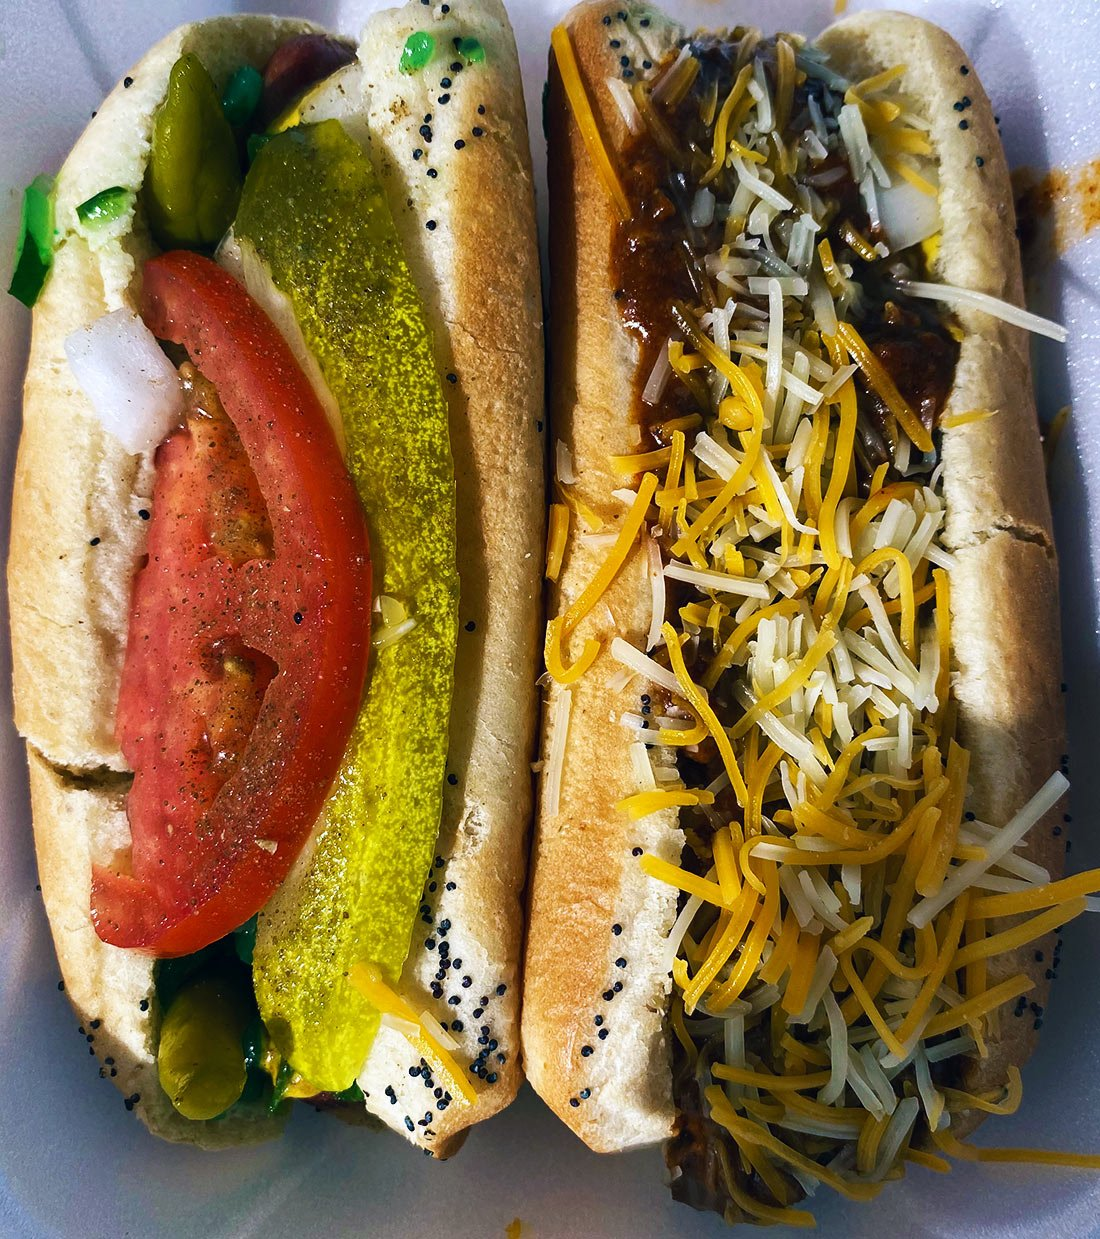 The Chicago and the Chili Cheese Dogs